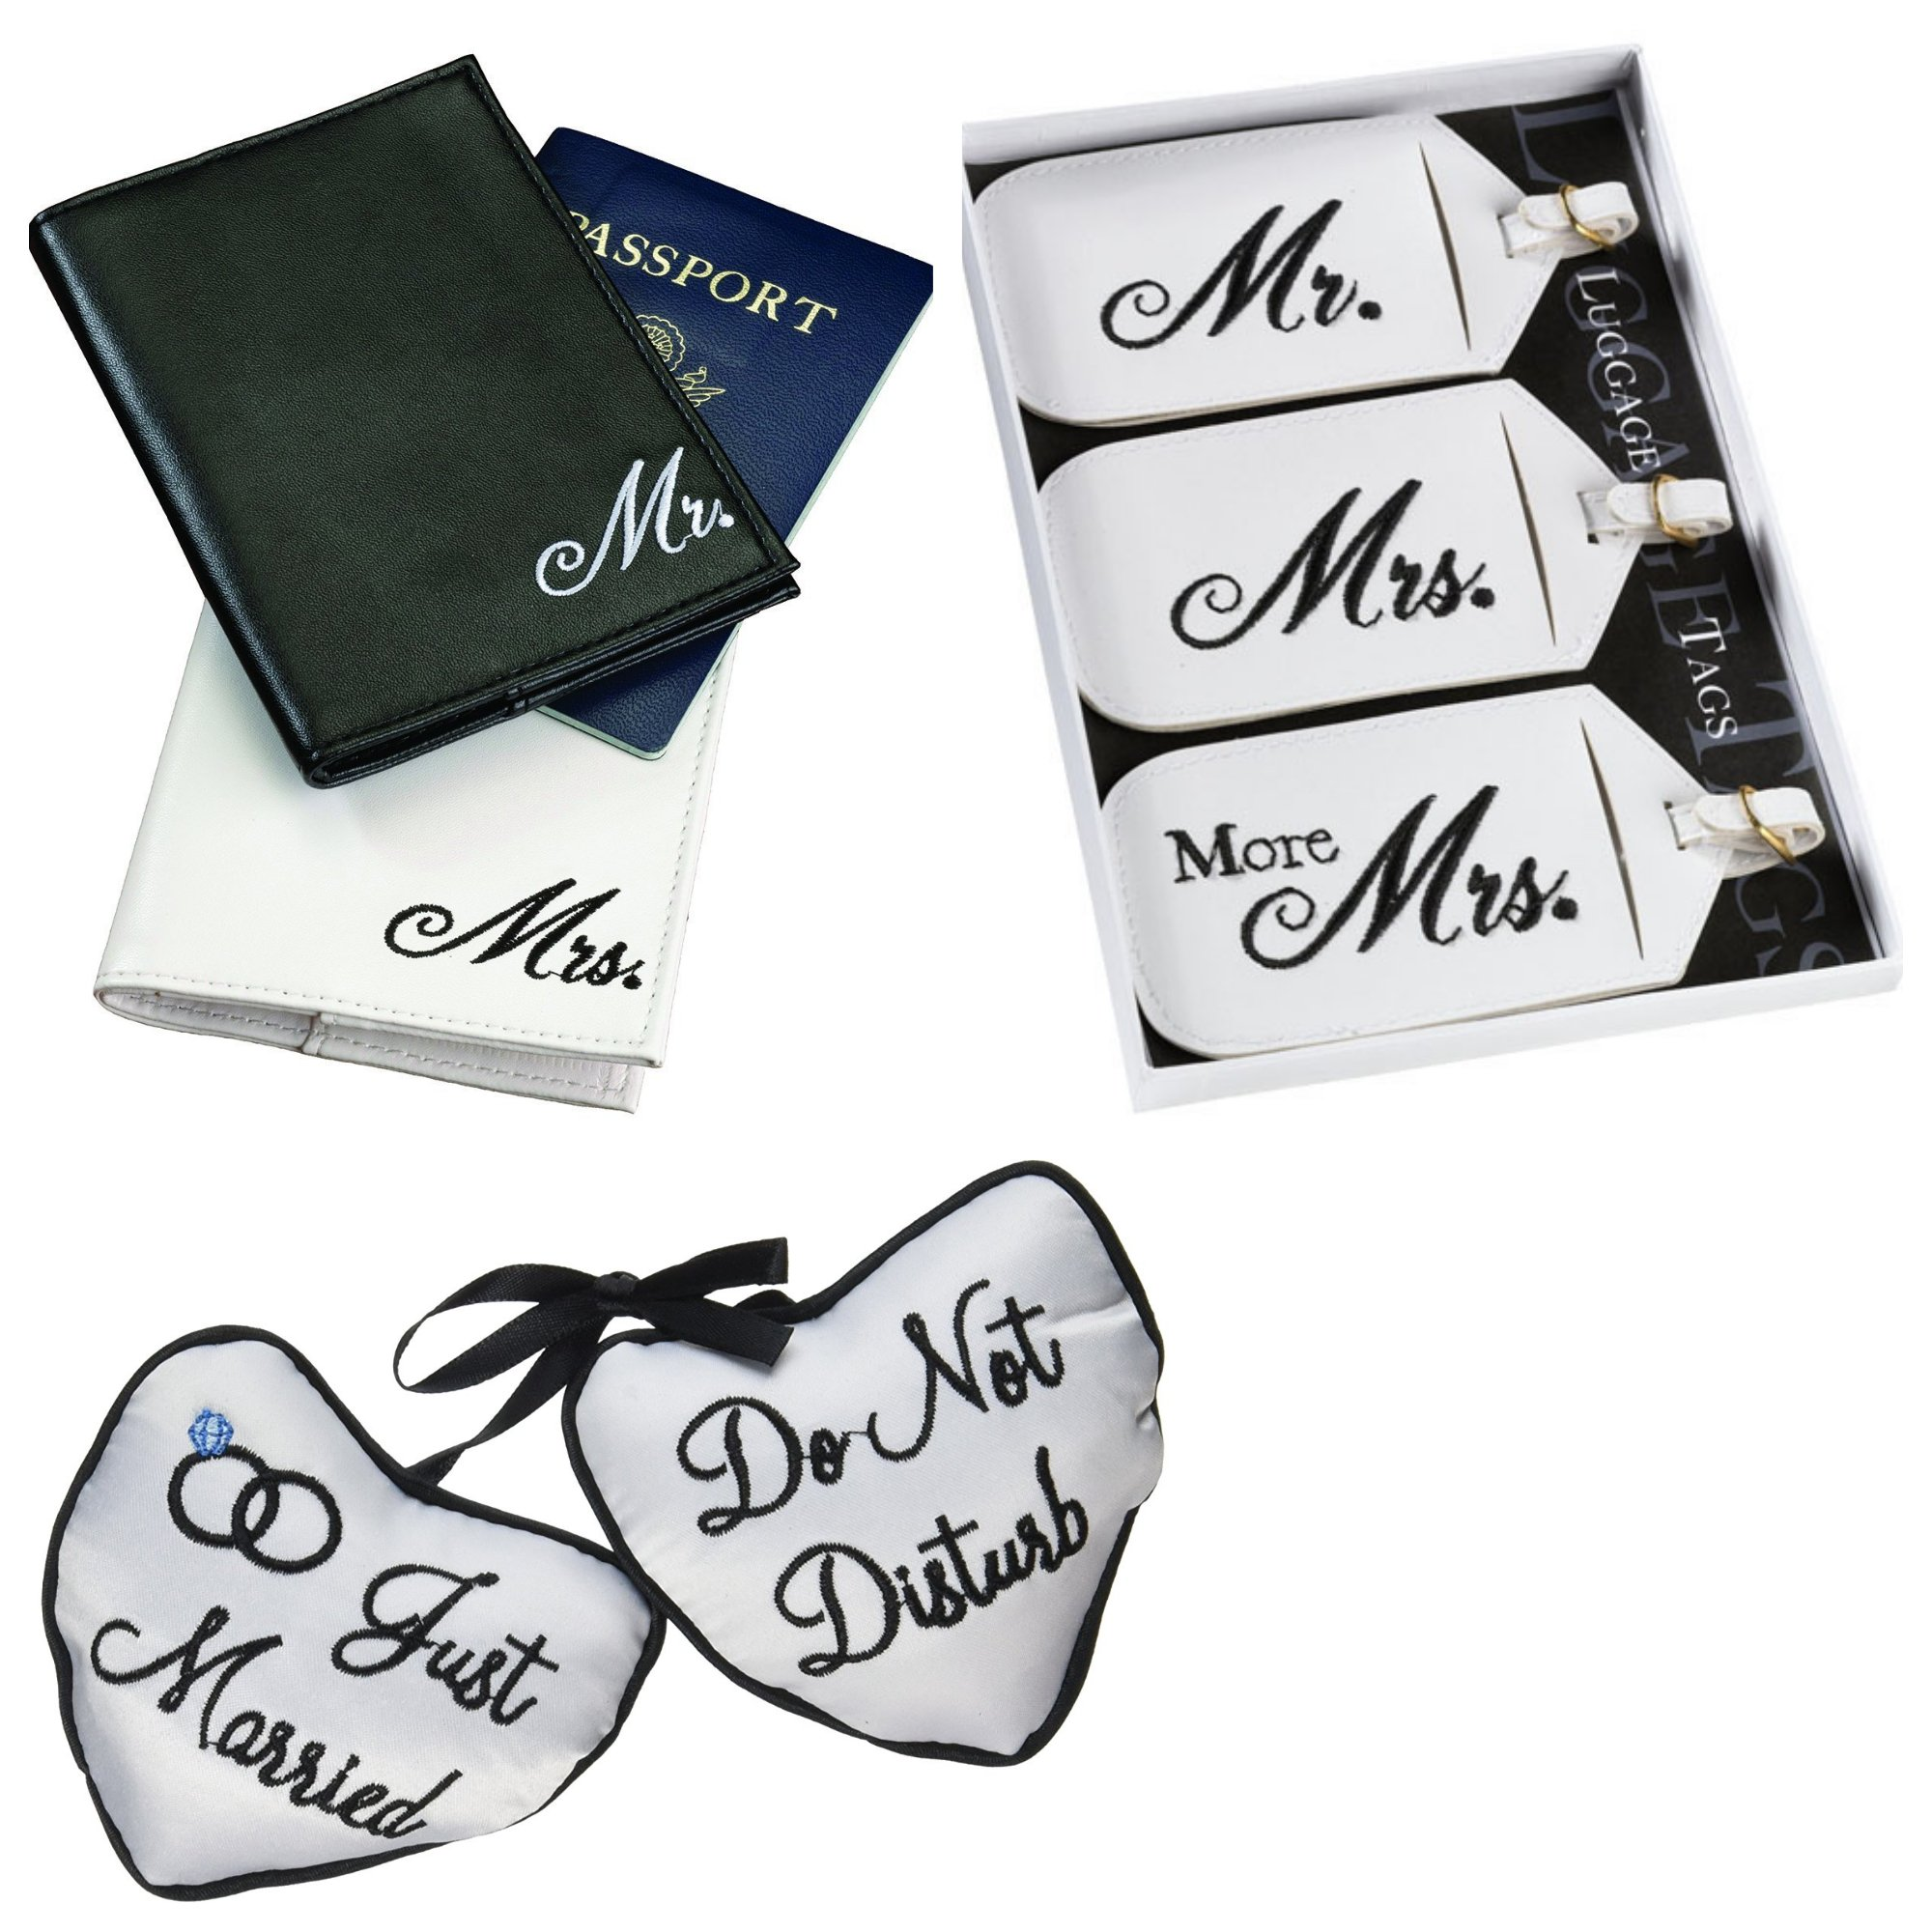 Bachelorette/Bridal Shower/Wedding Gift Of Passport Covers, Bridal Luggage Tags and Door Hanger